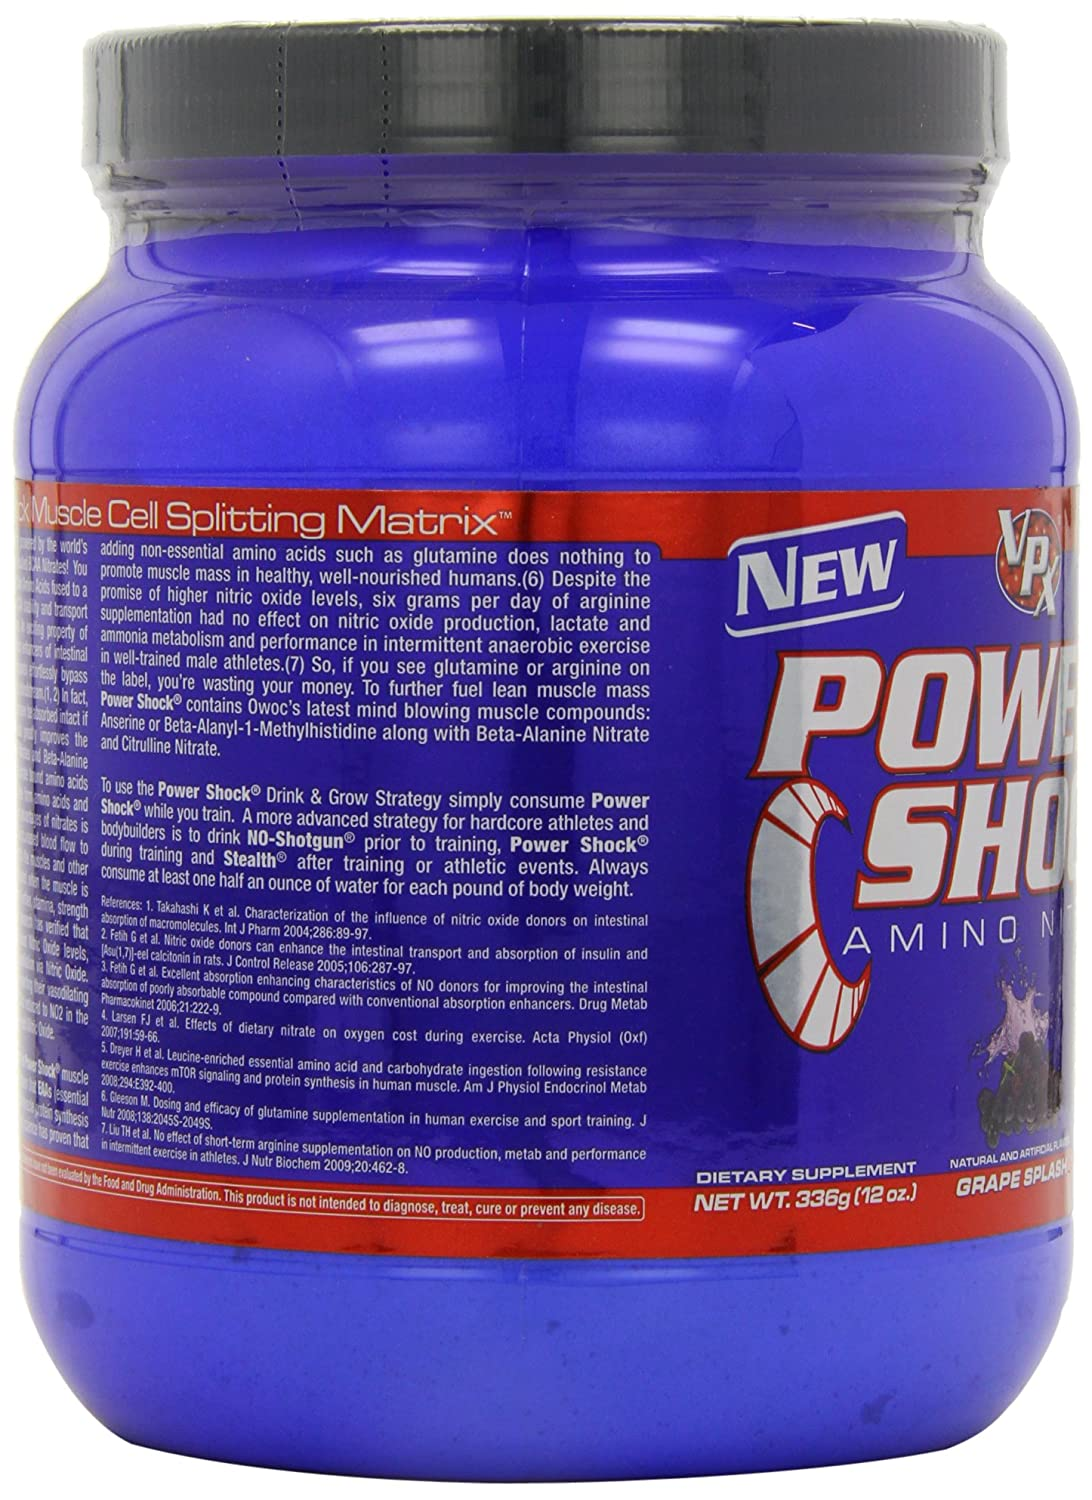 VPX Powershock Amino Nitrate, 364g, Geschmack:Grape: Amazon.de ...